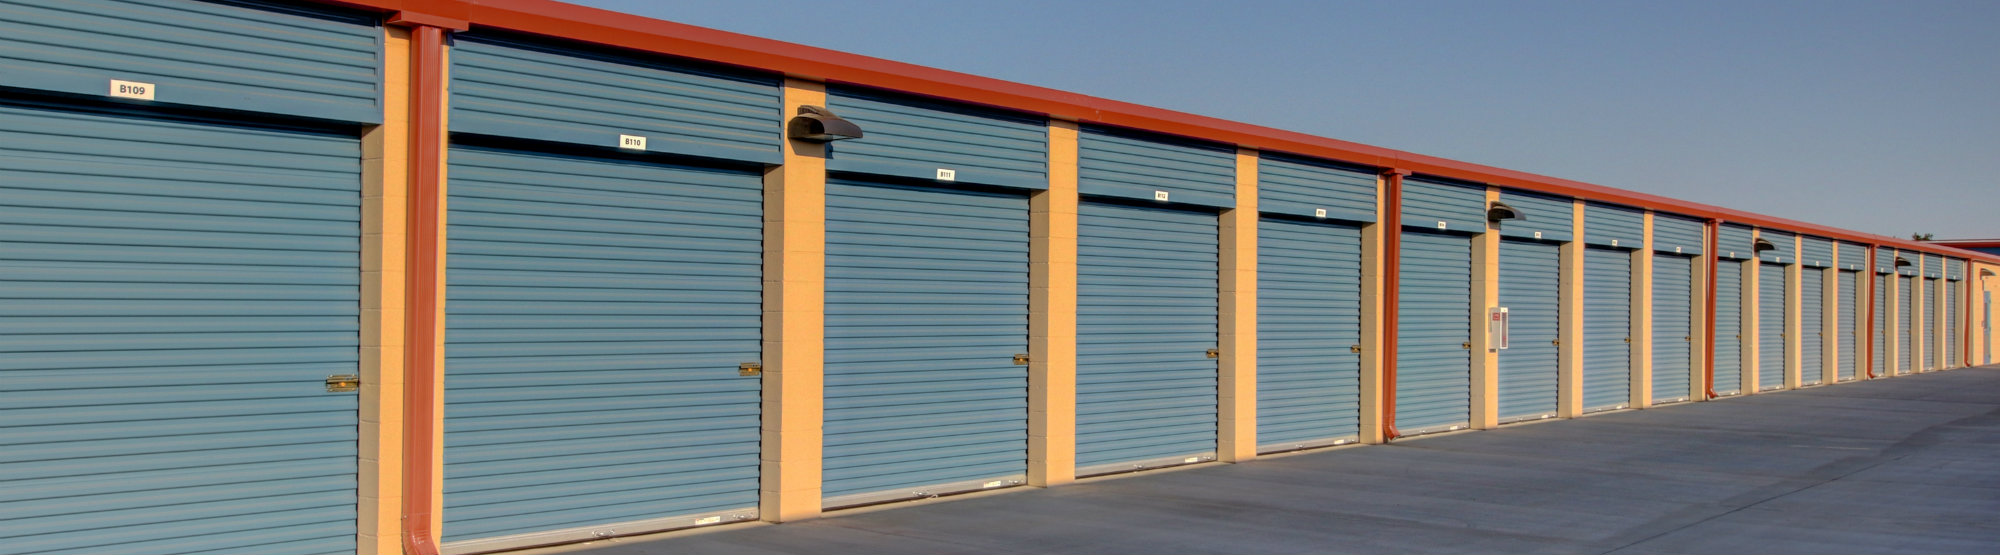 Murrieta Ca Self Storage Units Ranch Rv Amp Self Storage